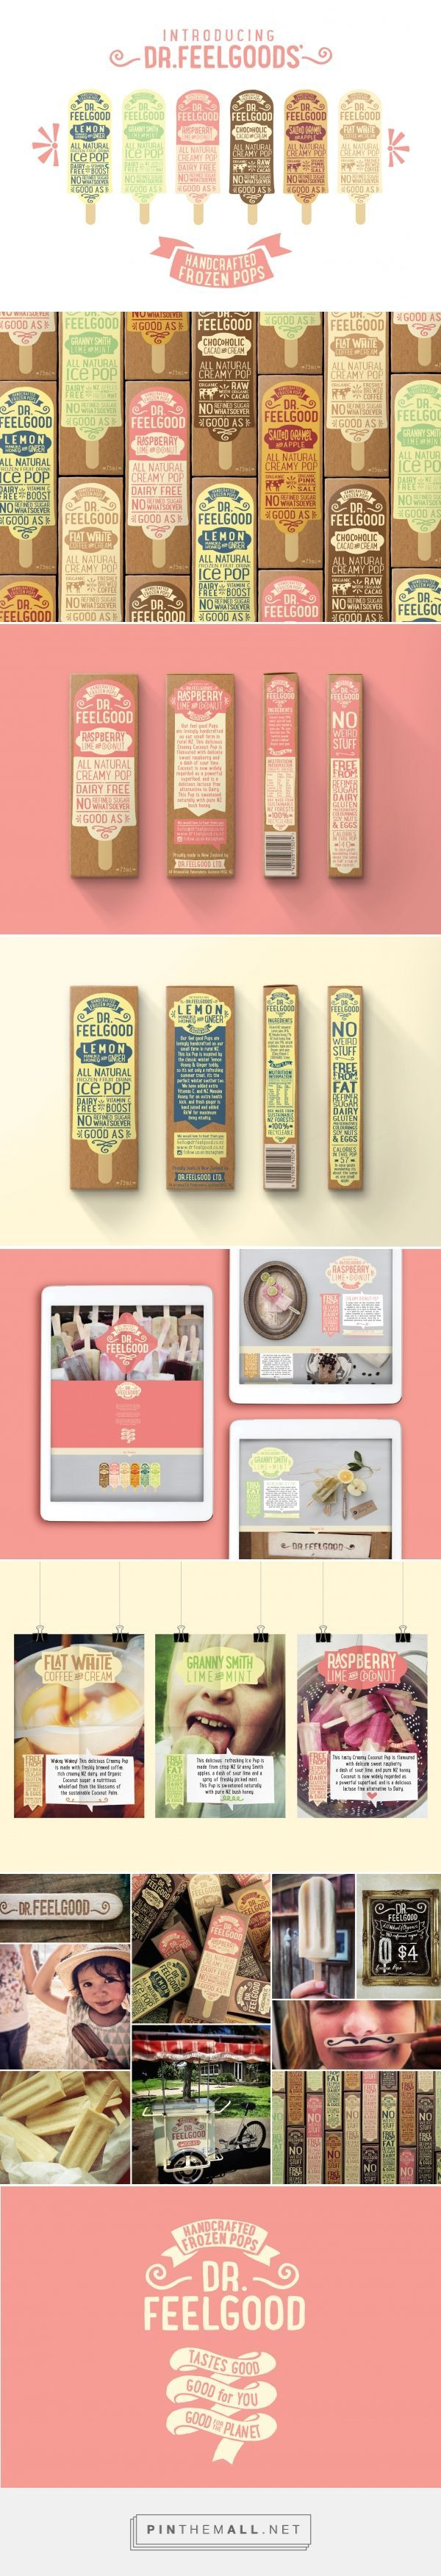 Dr.Feelgood Frozen Pops Packaging and Branding by Brandwagon | Fivestar Branding Agency – Design and Branding Agency & Curated Inspiration Gallery